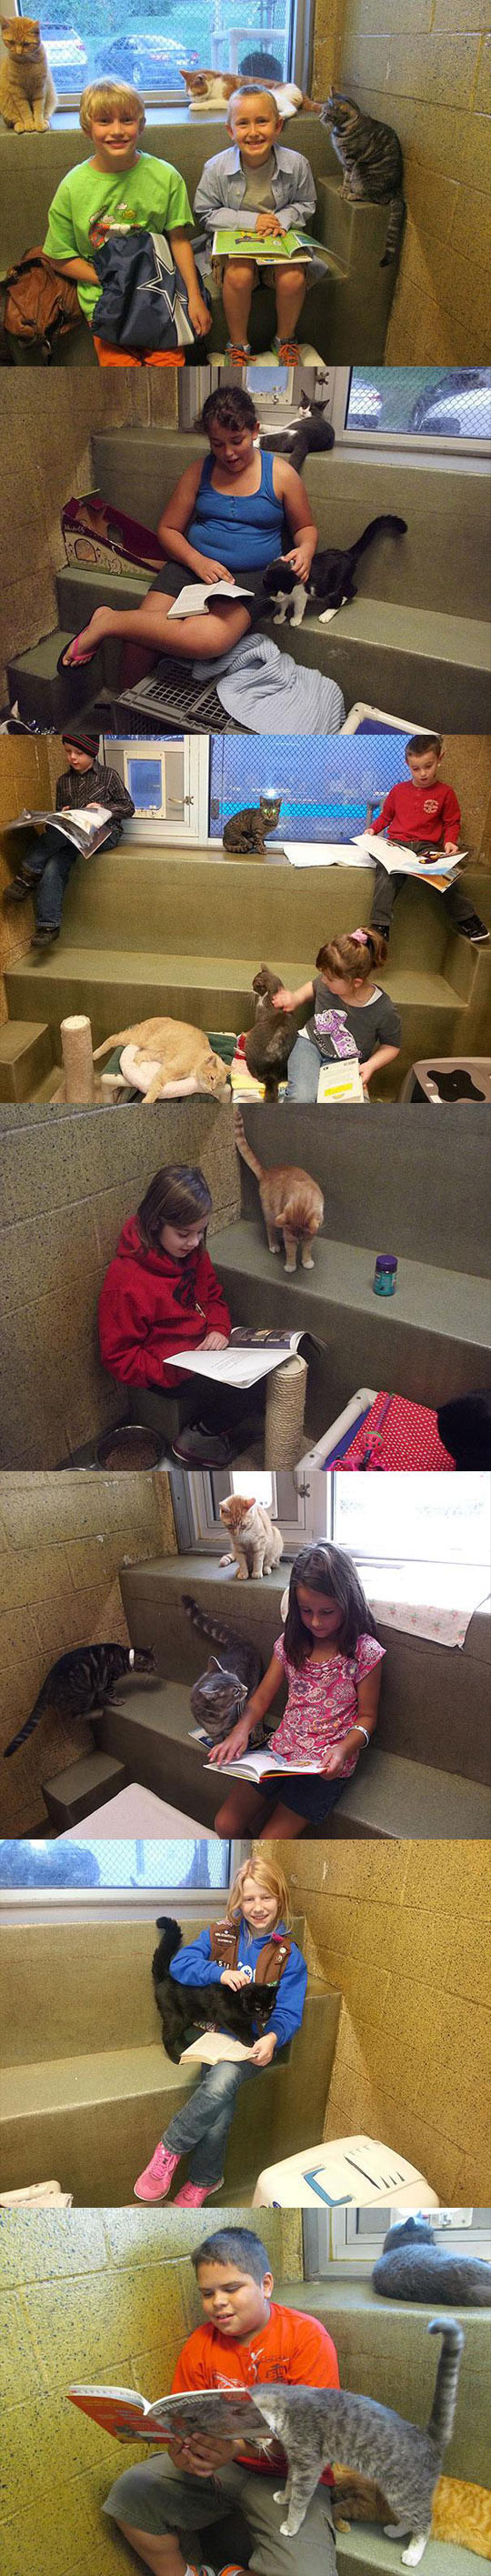 funny-reading-children-shelter-cats-book-buddies-kids